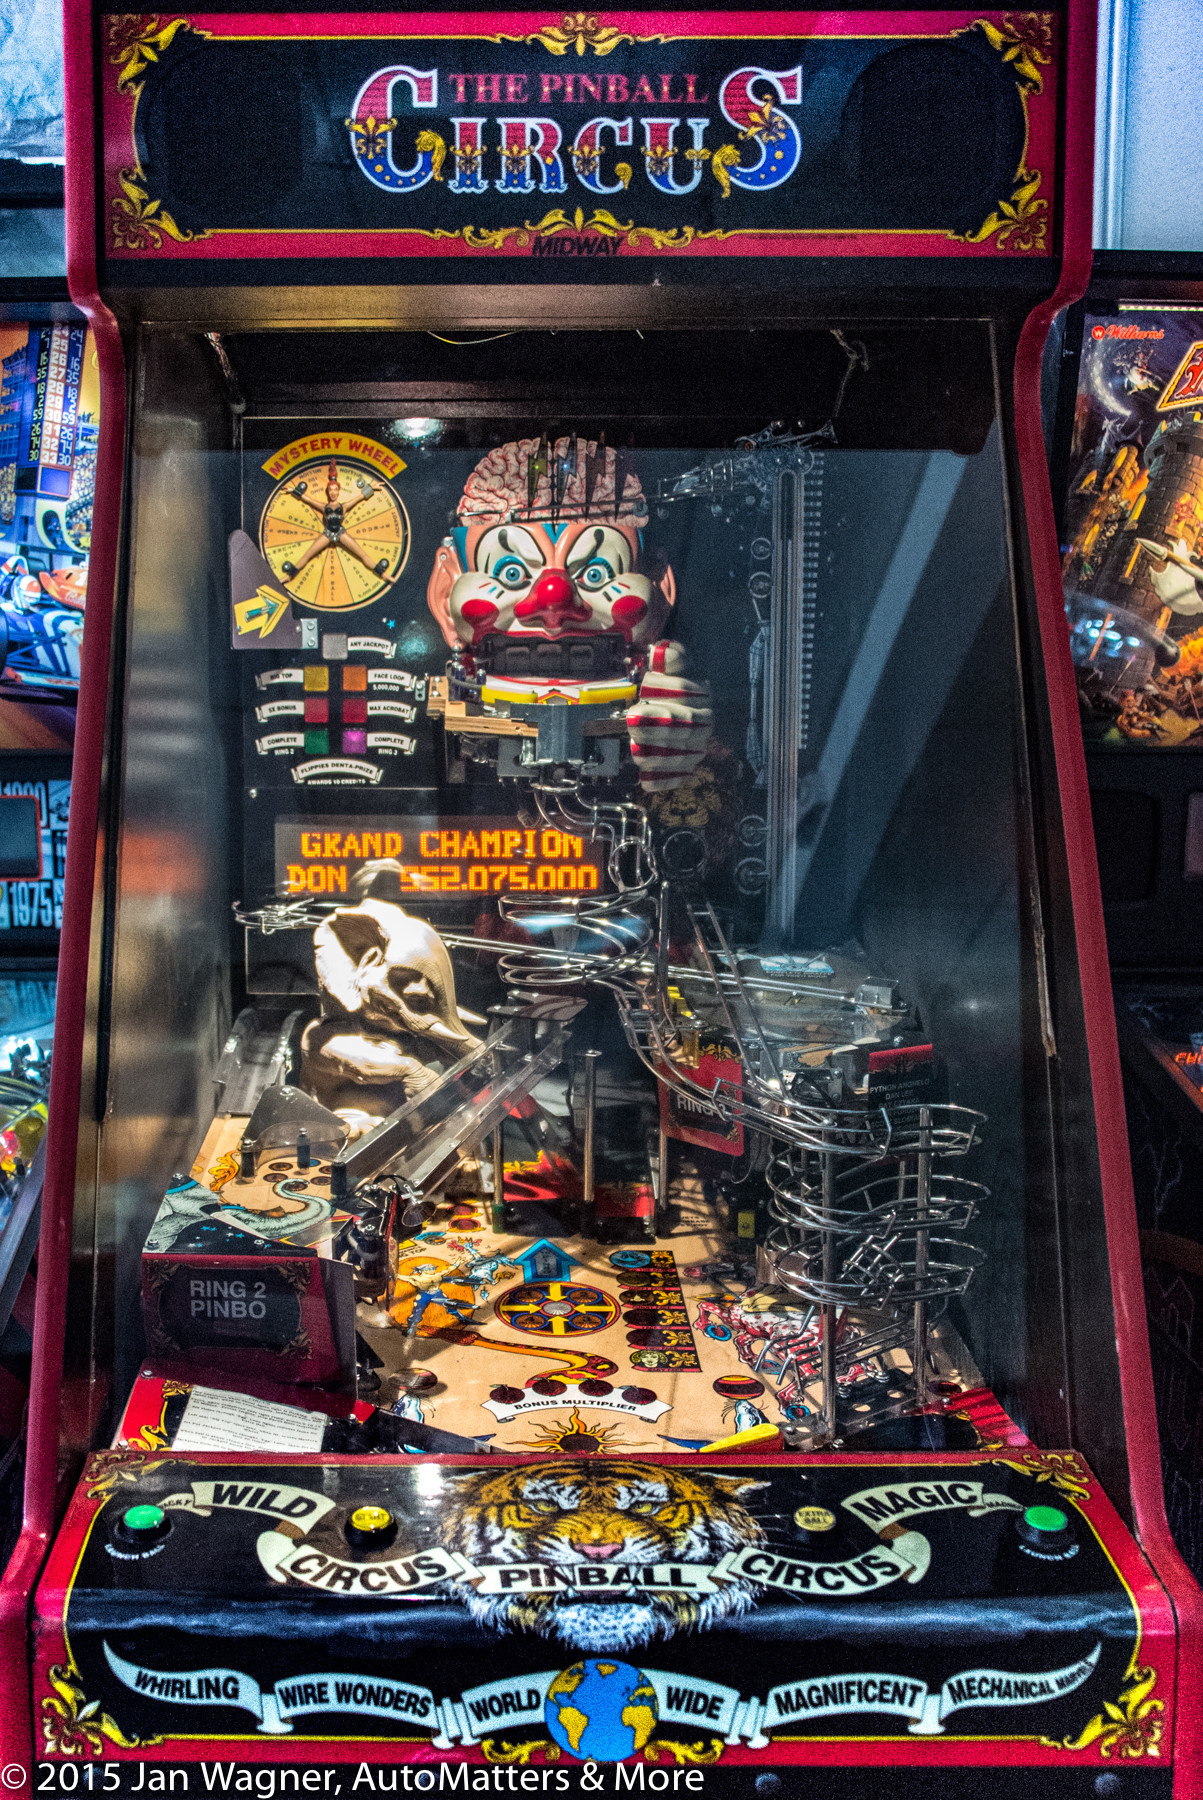 Automatters Amp More Pinball At San Diego Comic Con Amp The